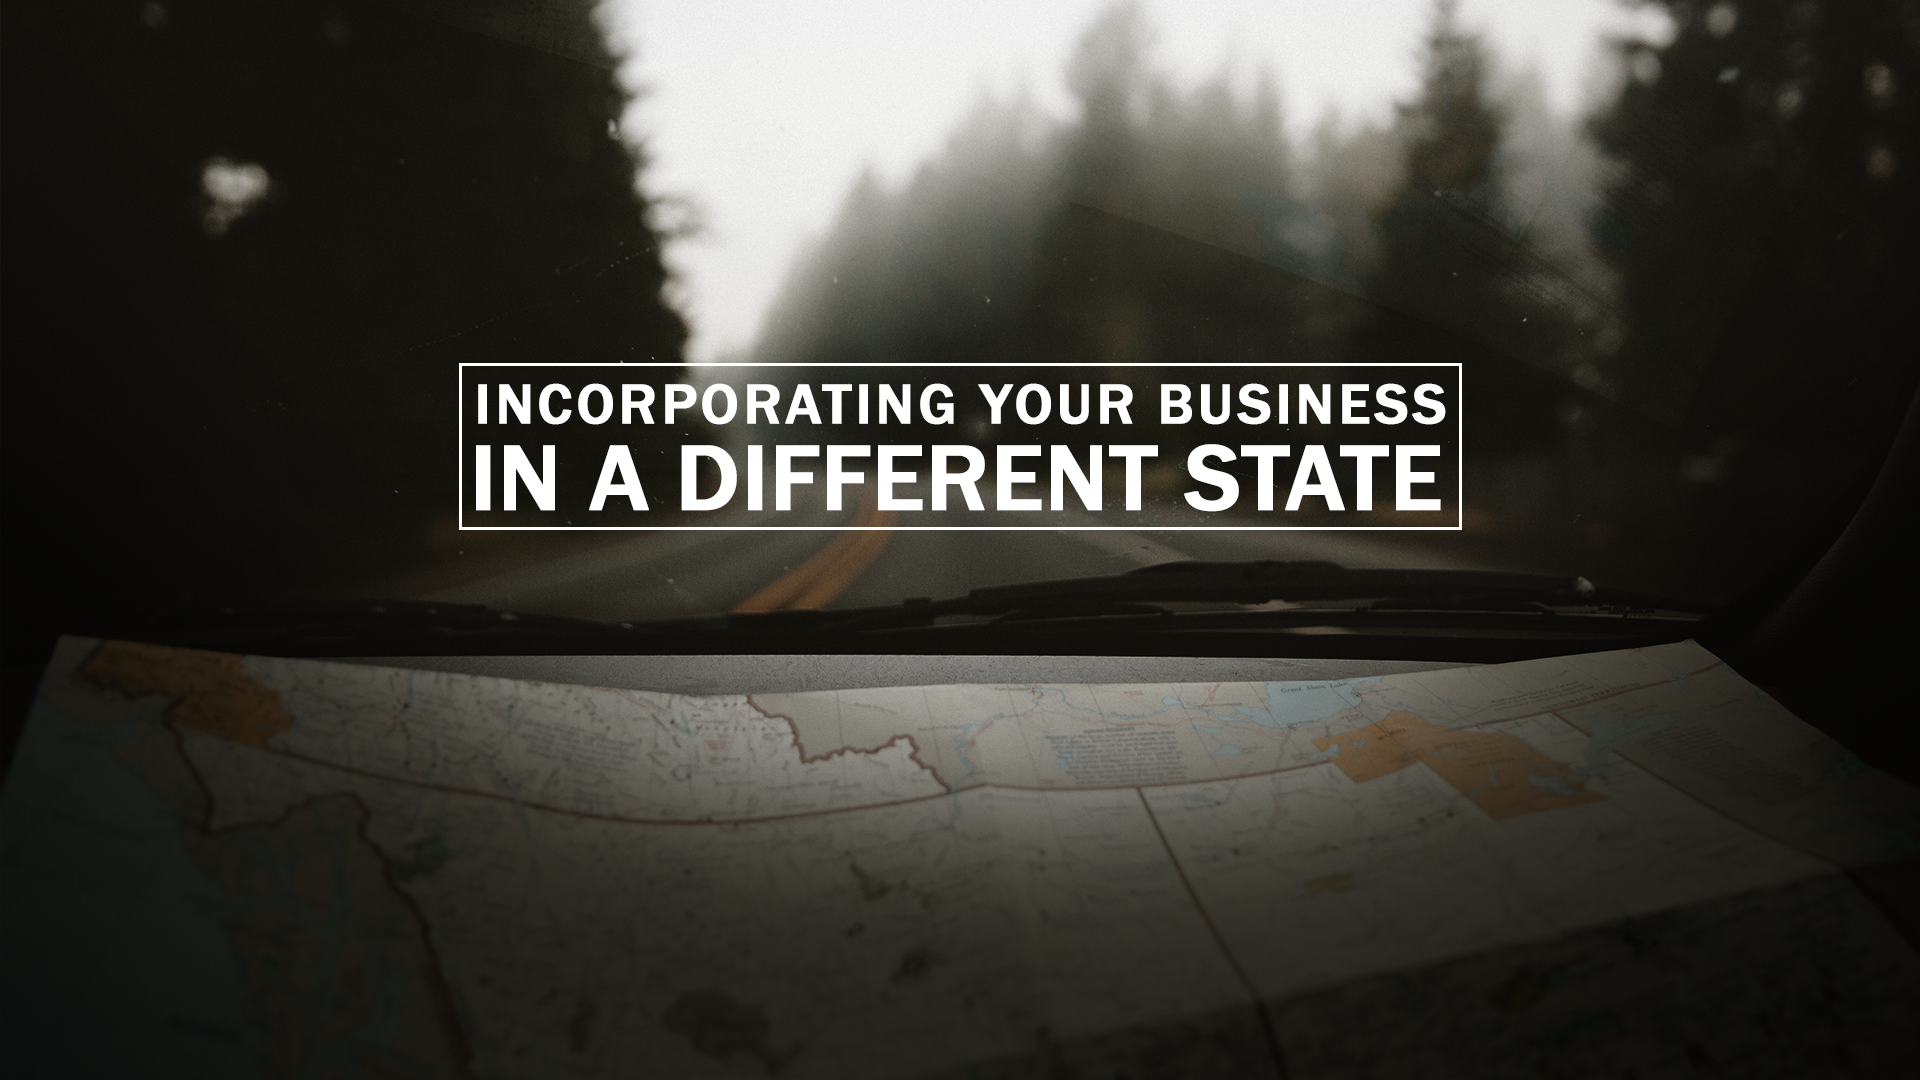 Why Incorporate Your Business in a Different State